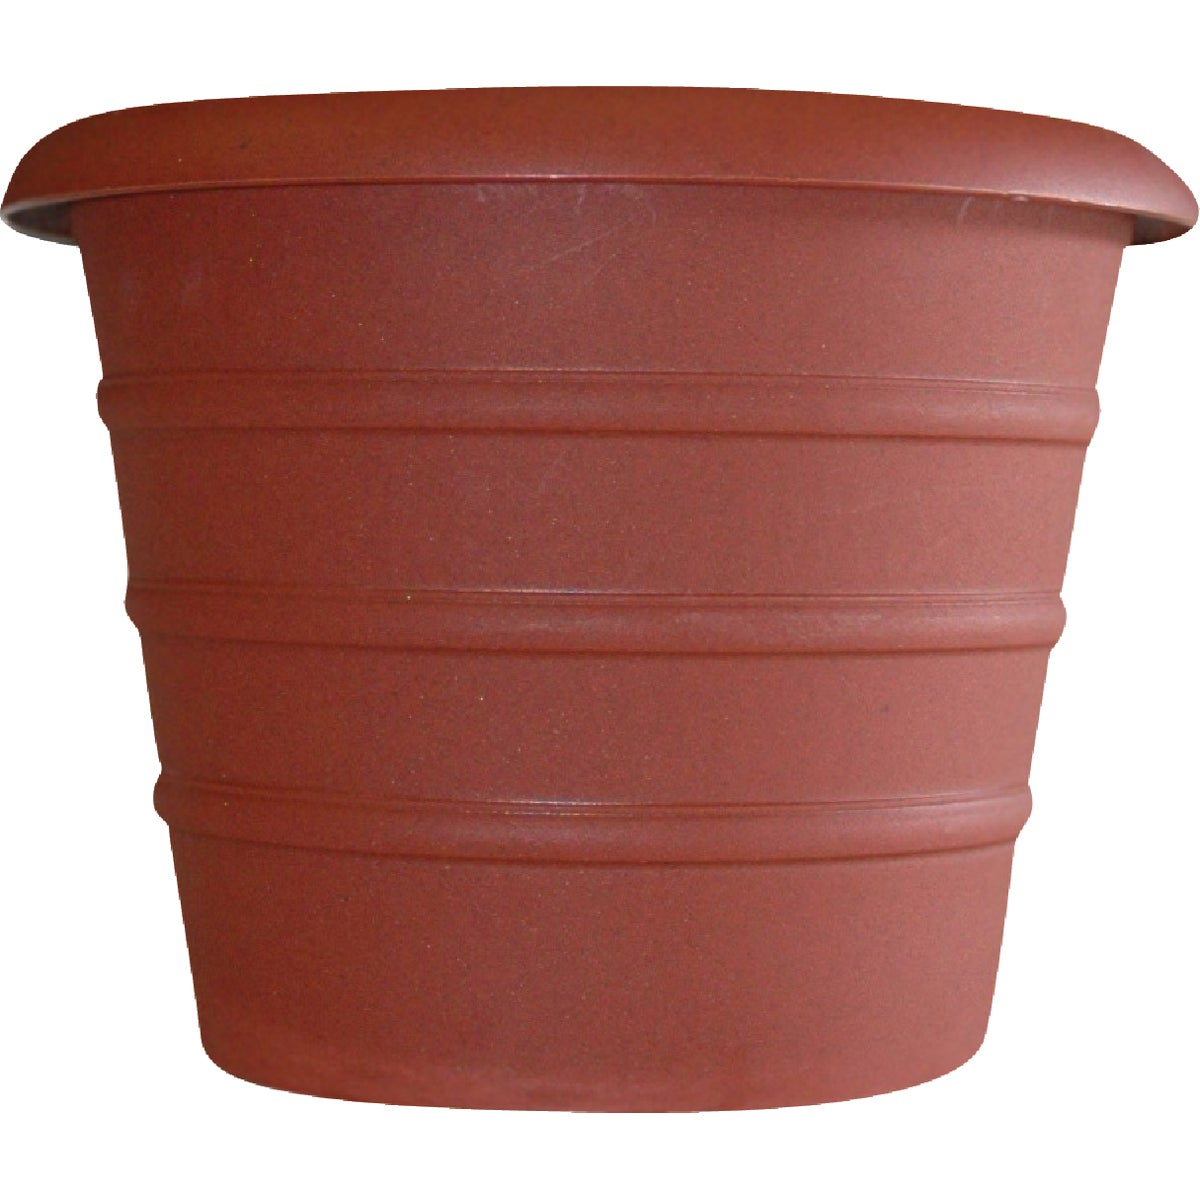 "16""T COTTA MARINA POT - MSA16000E07 by Myers Industries Inc"